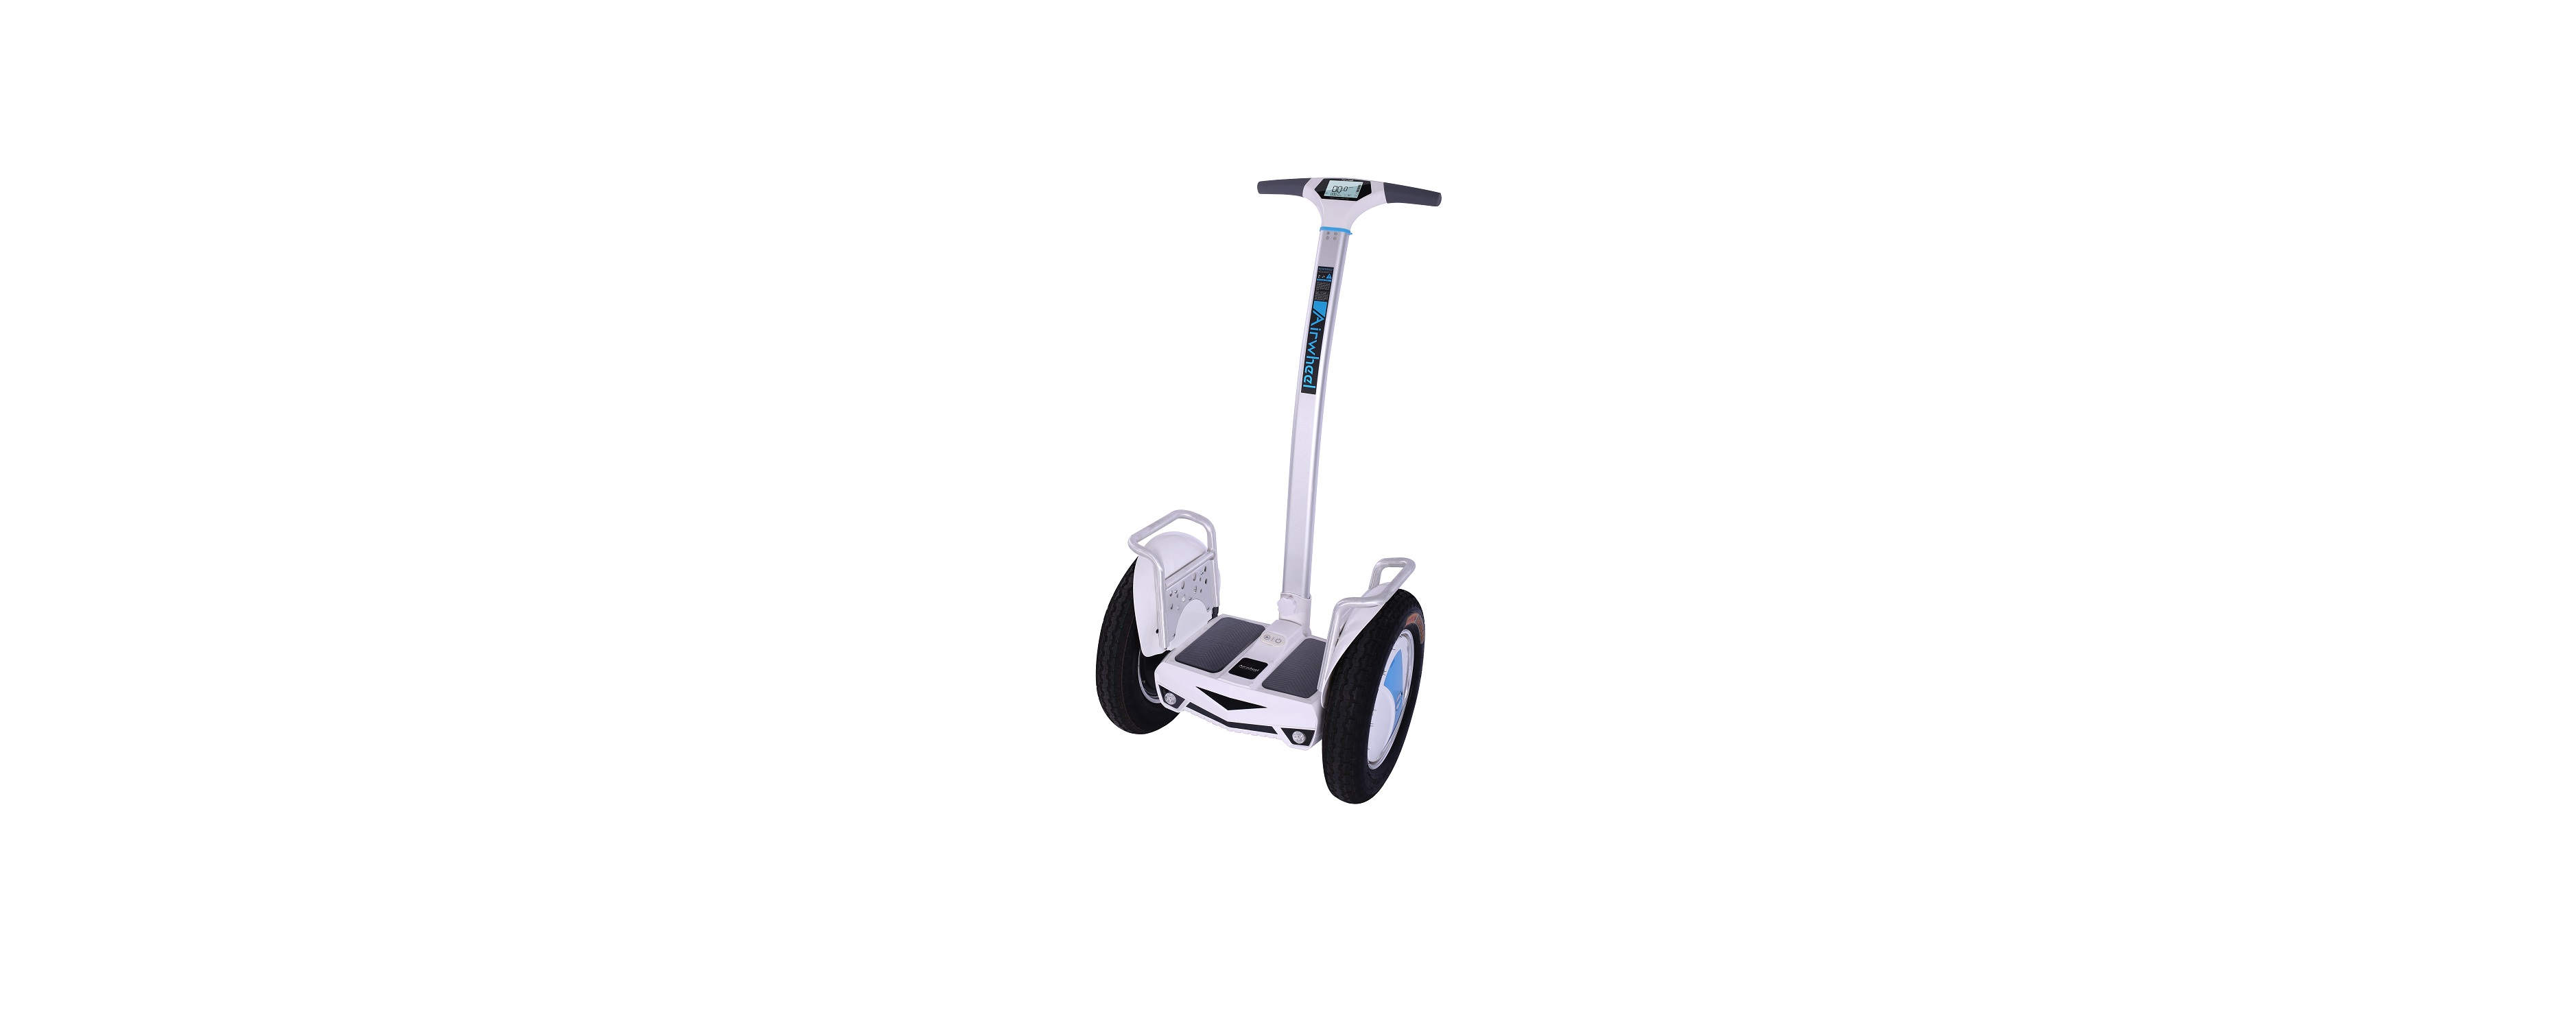 airwheel-s5-safe-scooter-expensive